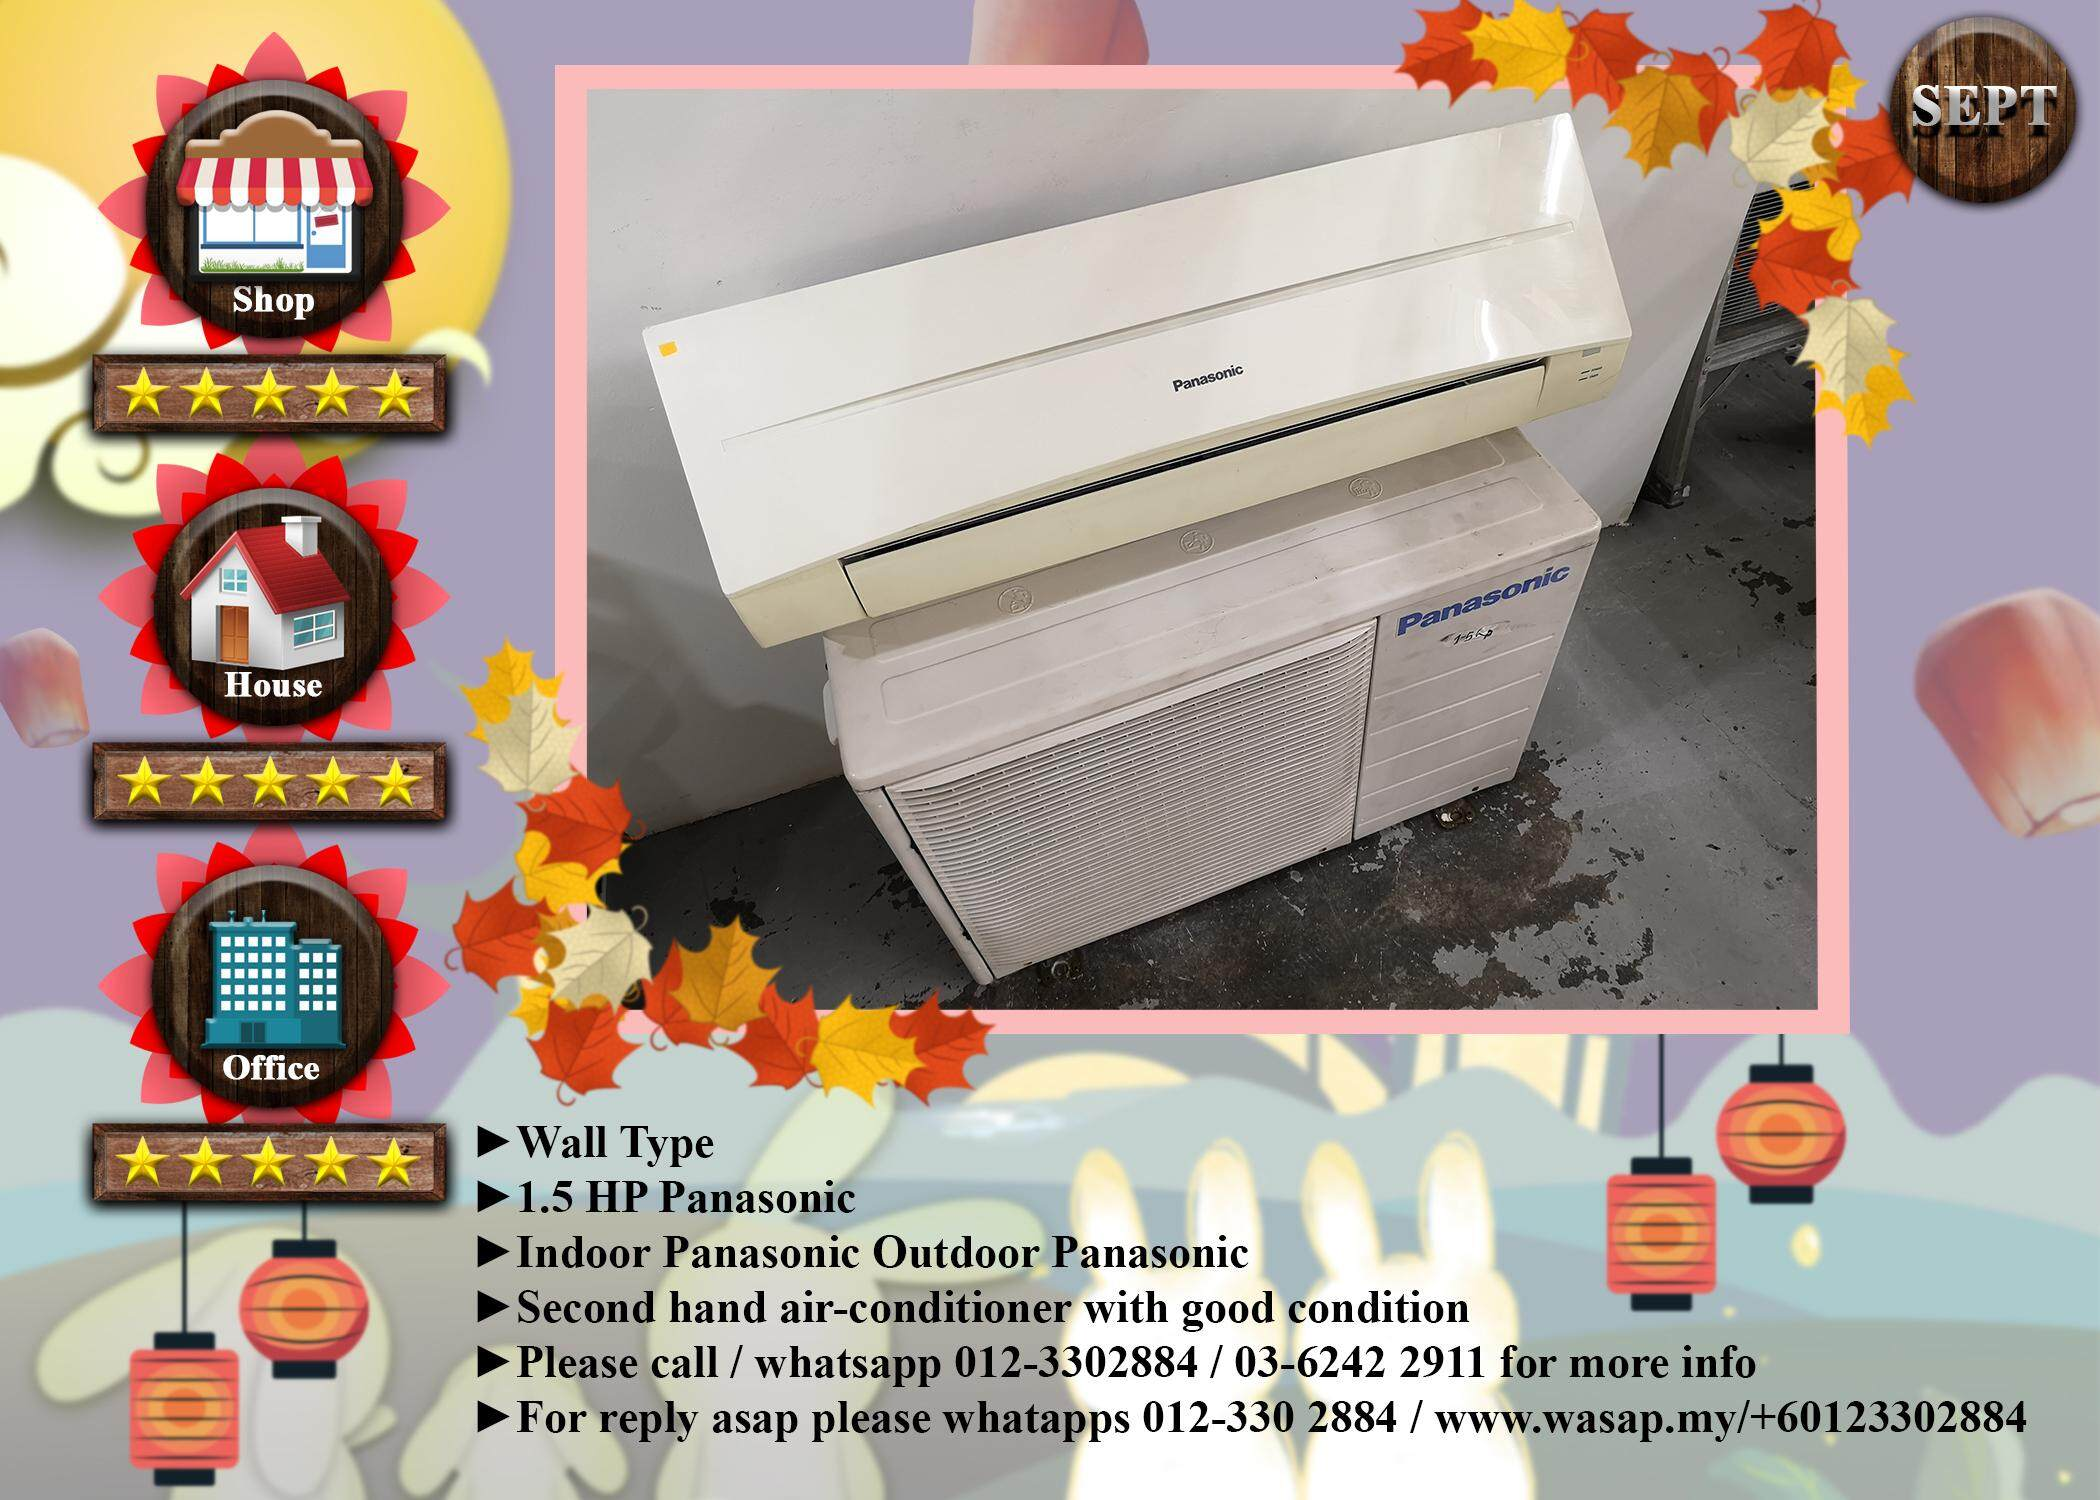 Panasonic 1.5HP Wall Type Second Hand Air Conditioner AC36/Airconditioner/PRICE INCLUDED INSTALLATION SERVICE/SIAP PASANG/KL VALLEY/INSTALLATION+COD/WARRANTY 1 MONTH